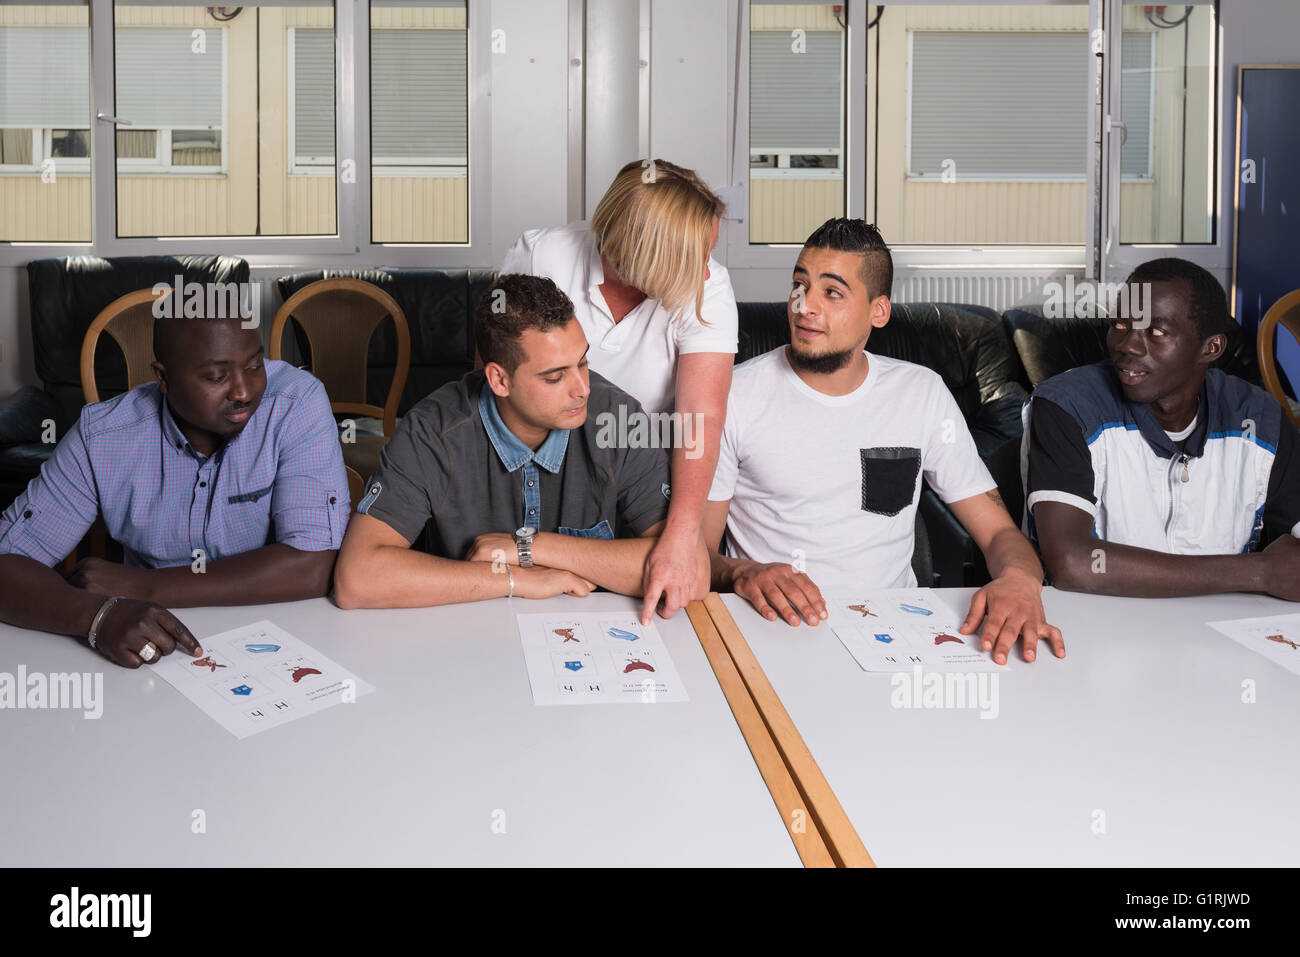 Language training for refugees in a German camp - Stock Image